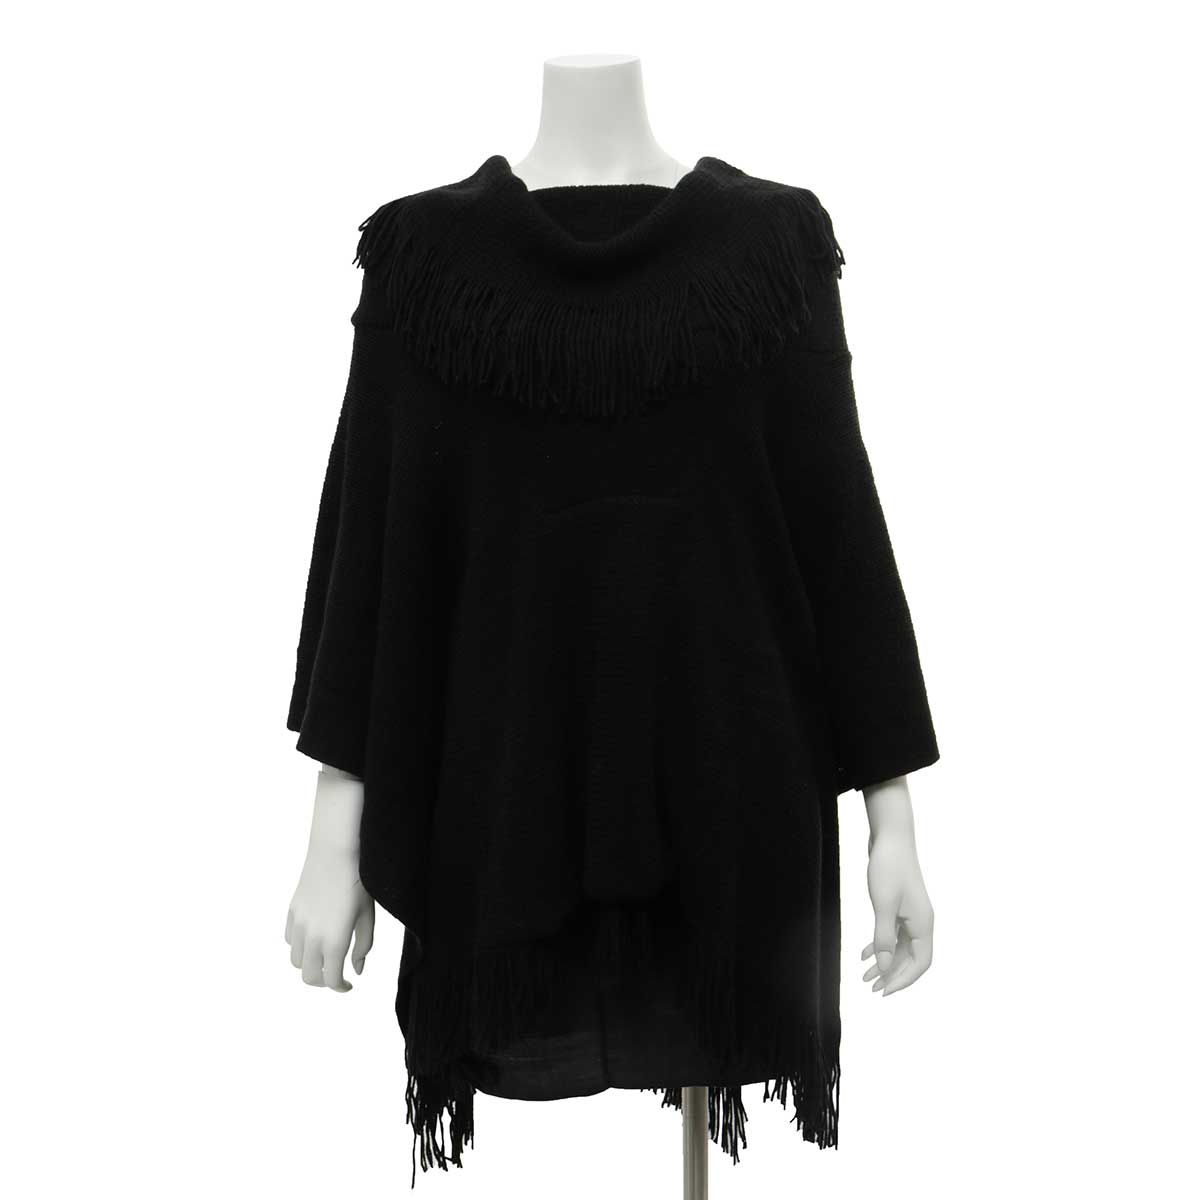 Black Poncho with Pouch and Fringe